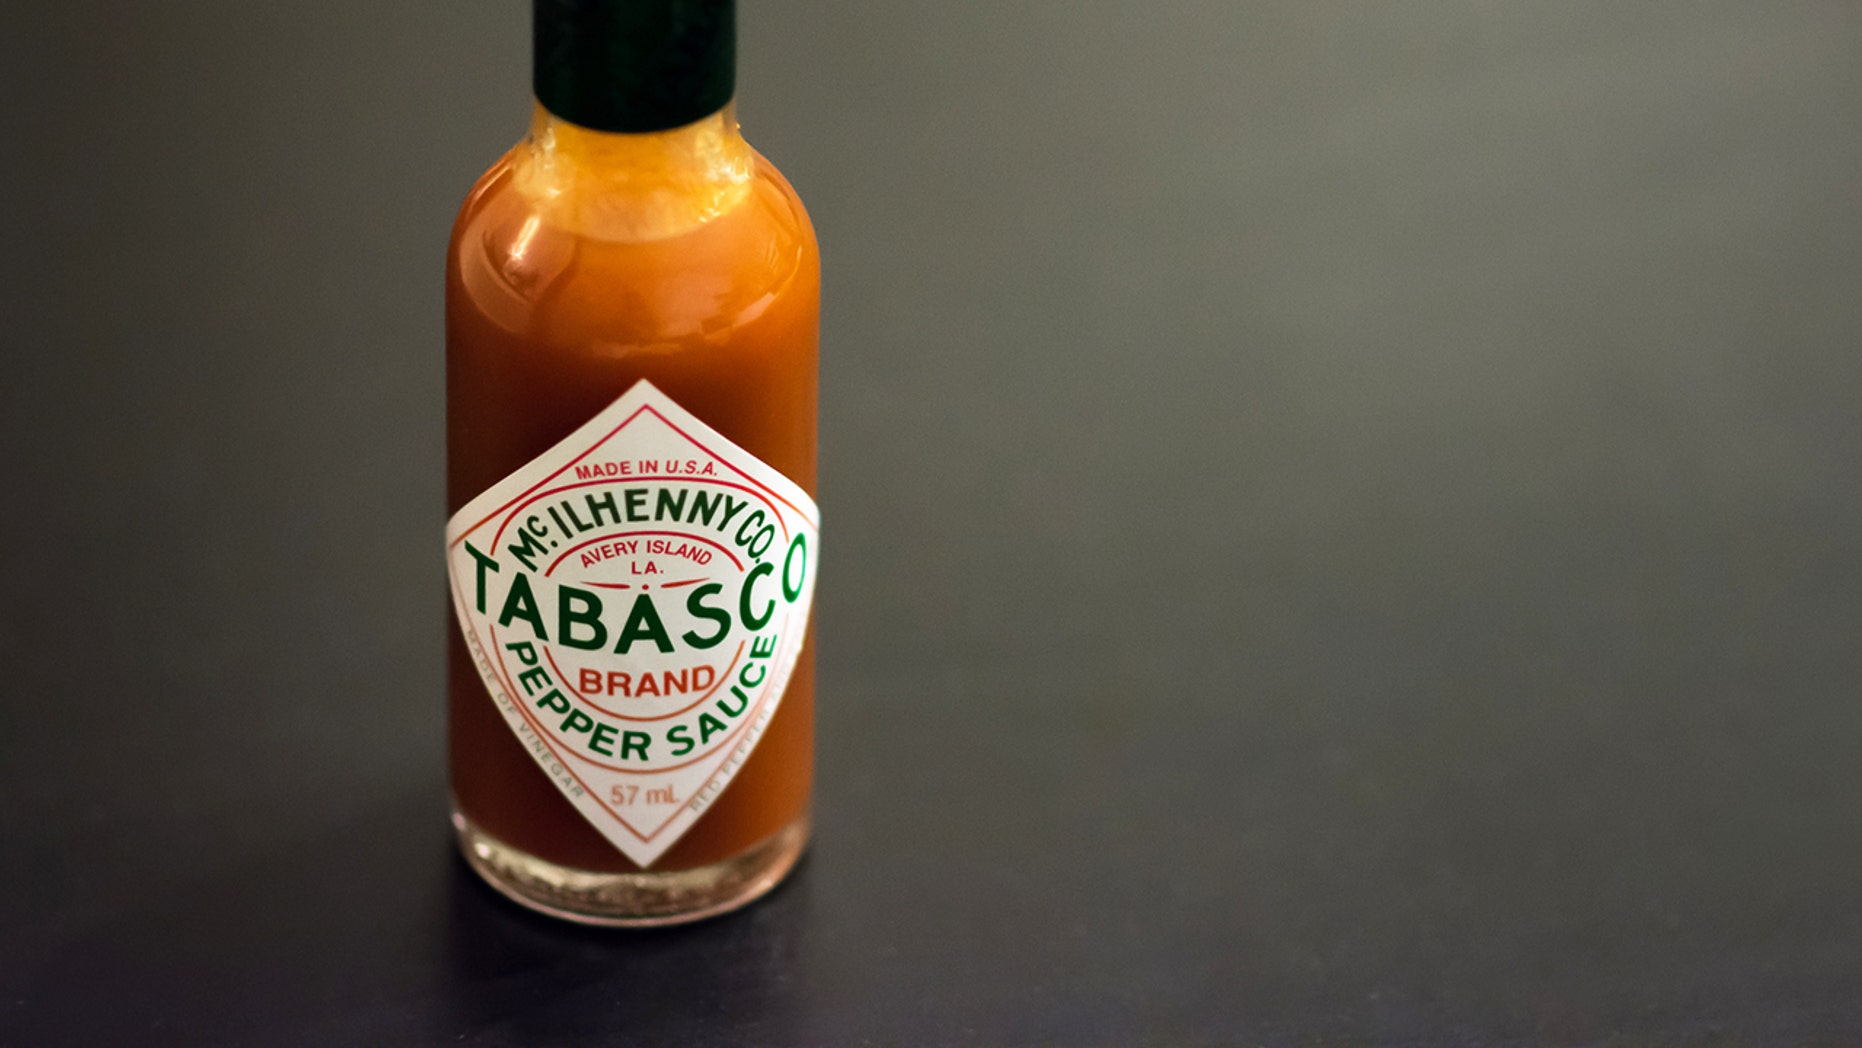 Tabasco's new Scorpion Sauce blends scorpion pepper with guava, pineapple and their original Red Sauce.